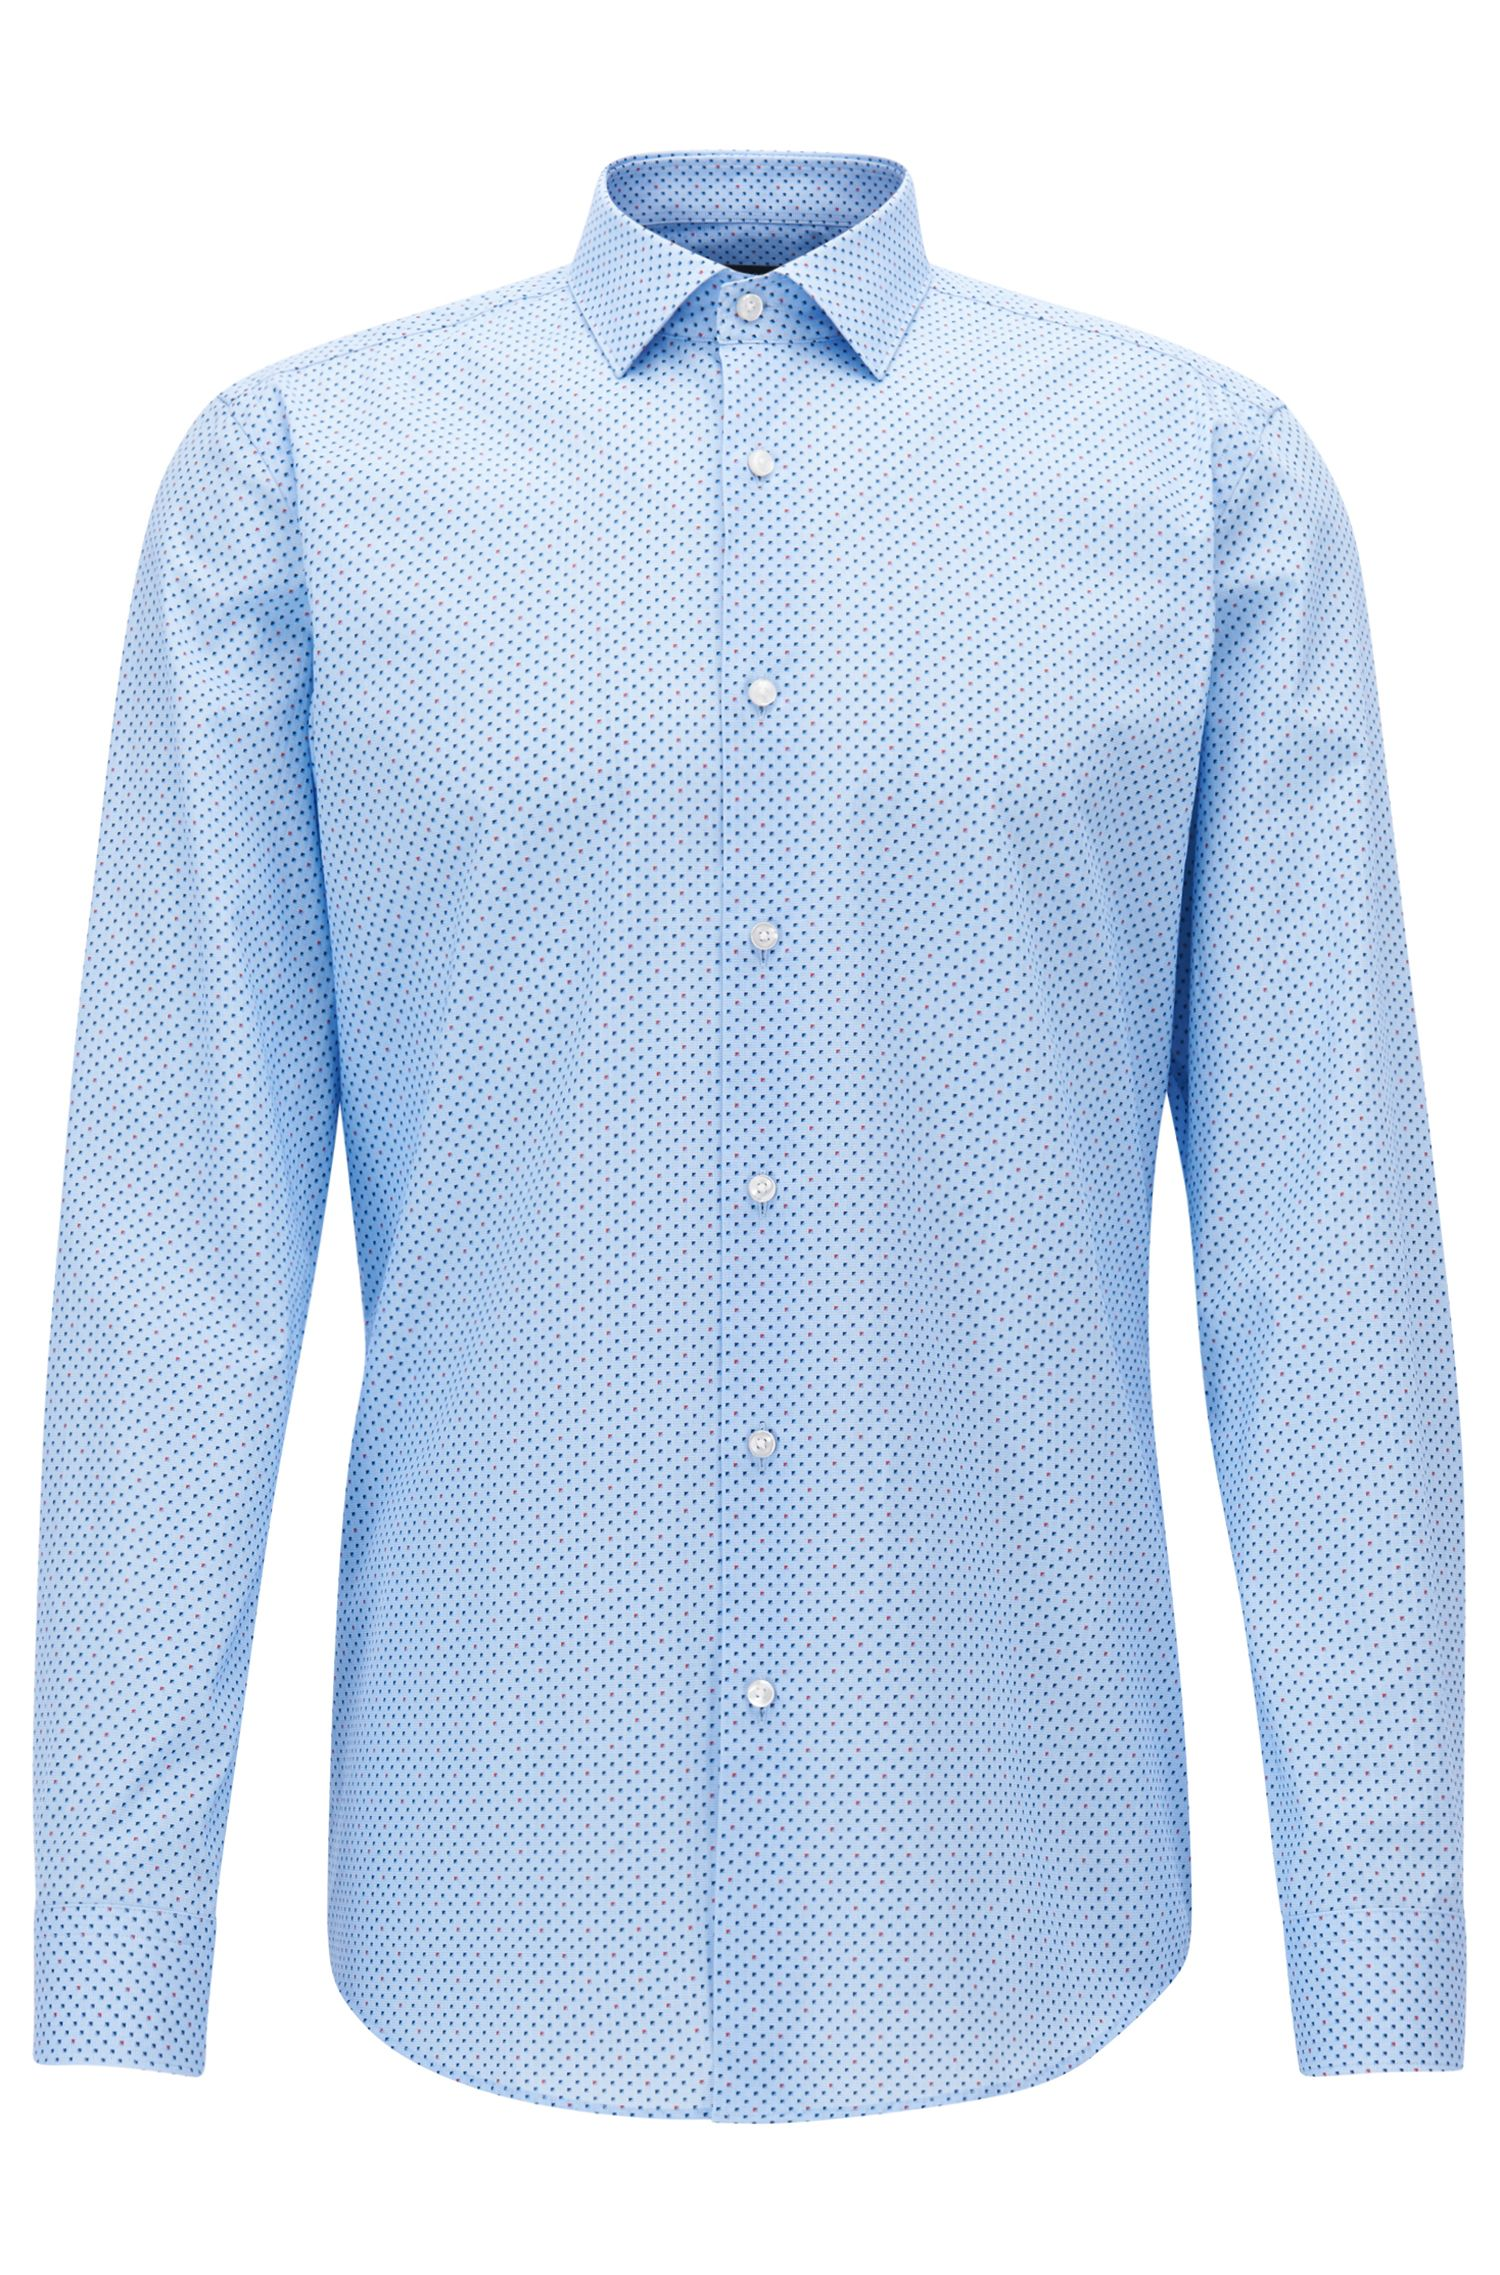 Pindot Cotton Dress Shirt, Slim Fit | Ismo , Blue